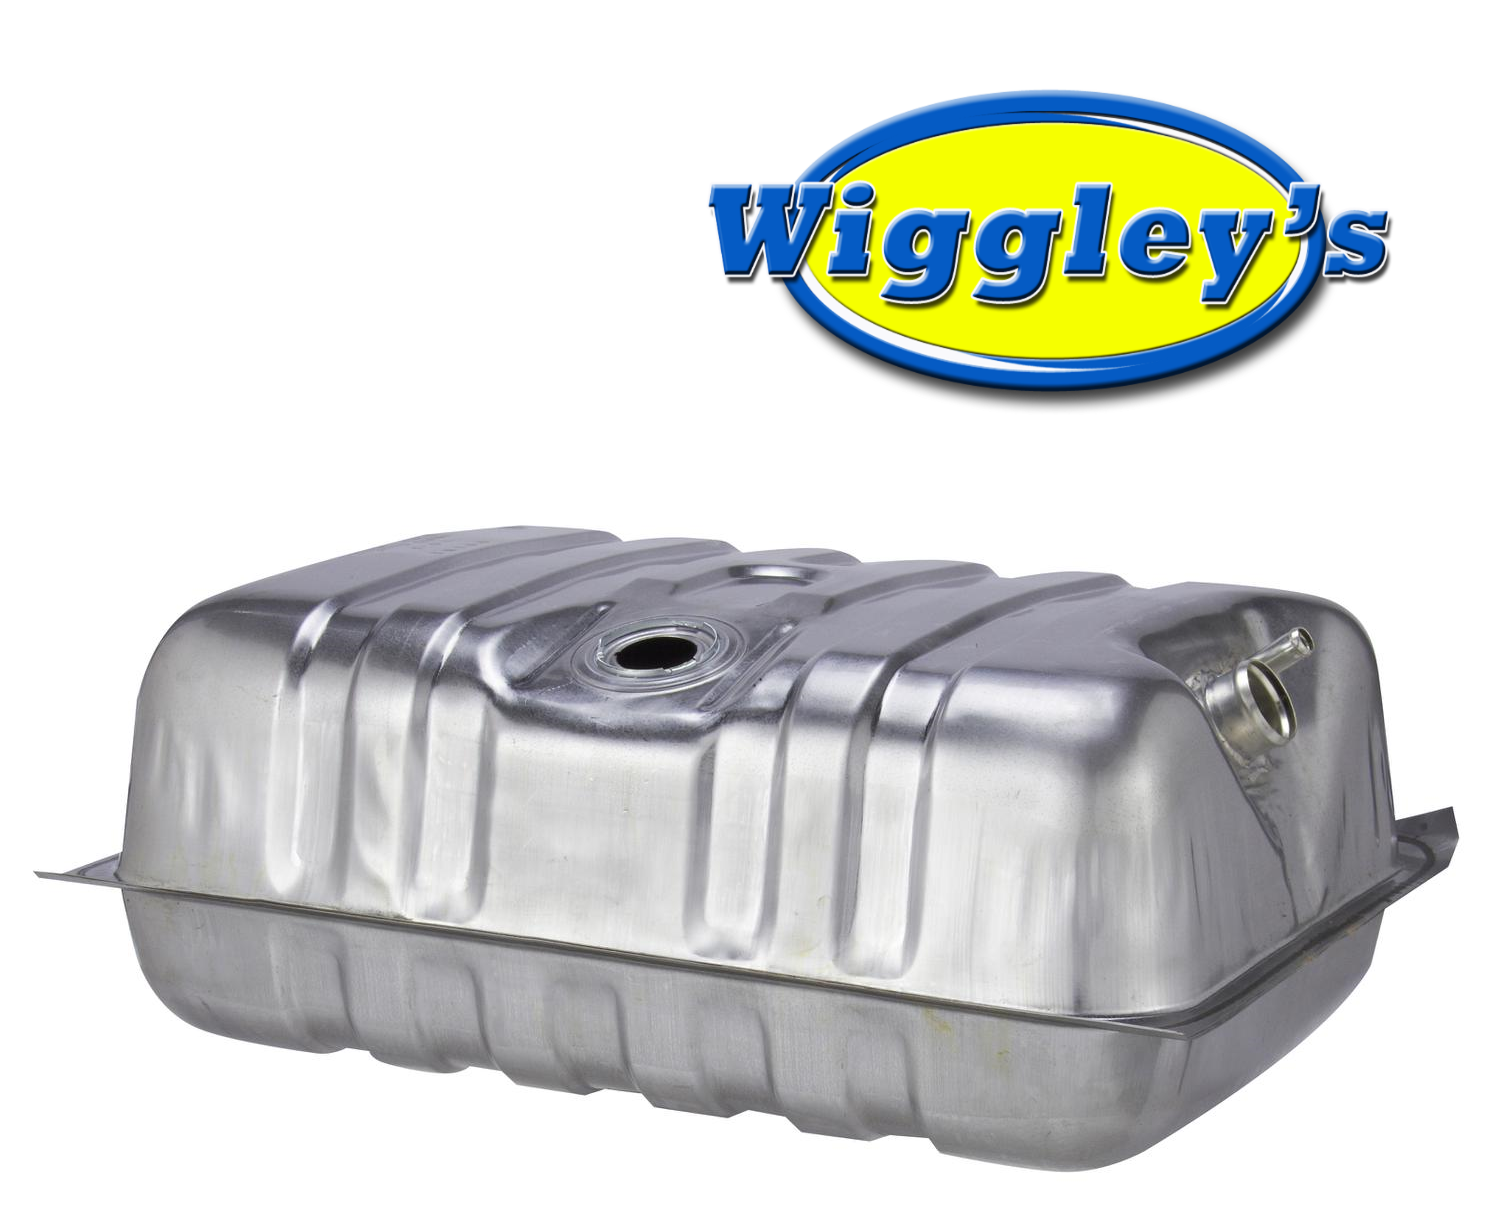 FUEL TANK SPECTRA F9A, IF9A FITS 78 FORD BRONCO 5.8L-V8 (25 GALLON)